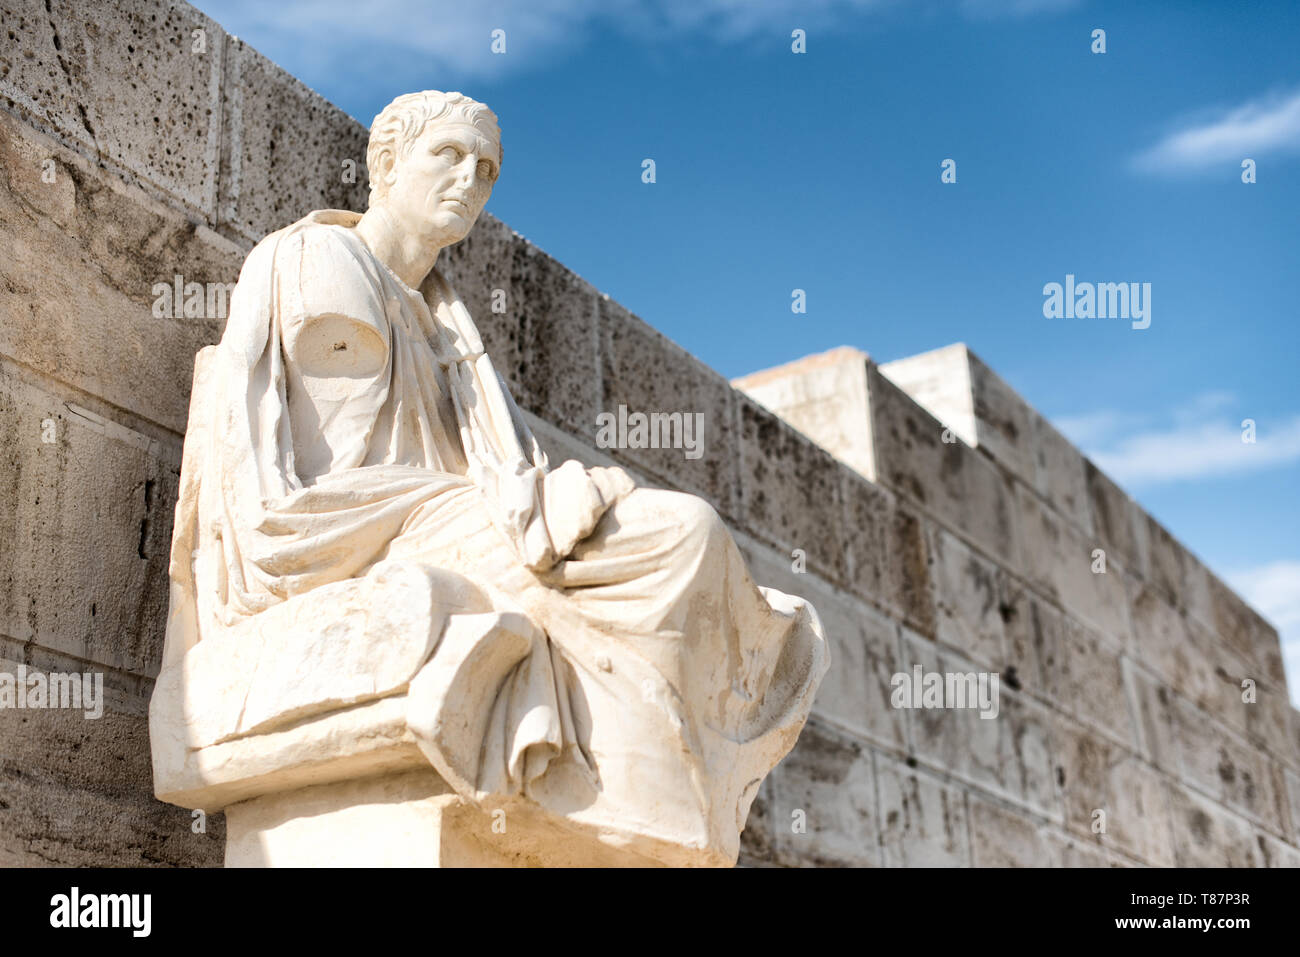 Honorary monuments of dramatic poets at the eastern parados at the Acropolis. The Acropolis of Athens is an ancient citadel standing on a rocky outcro - Stock Image